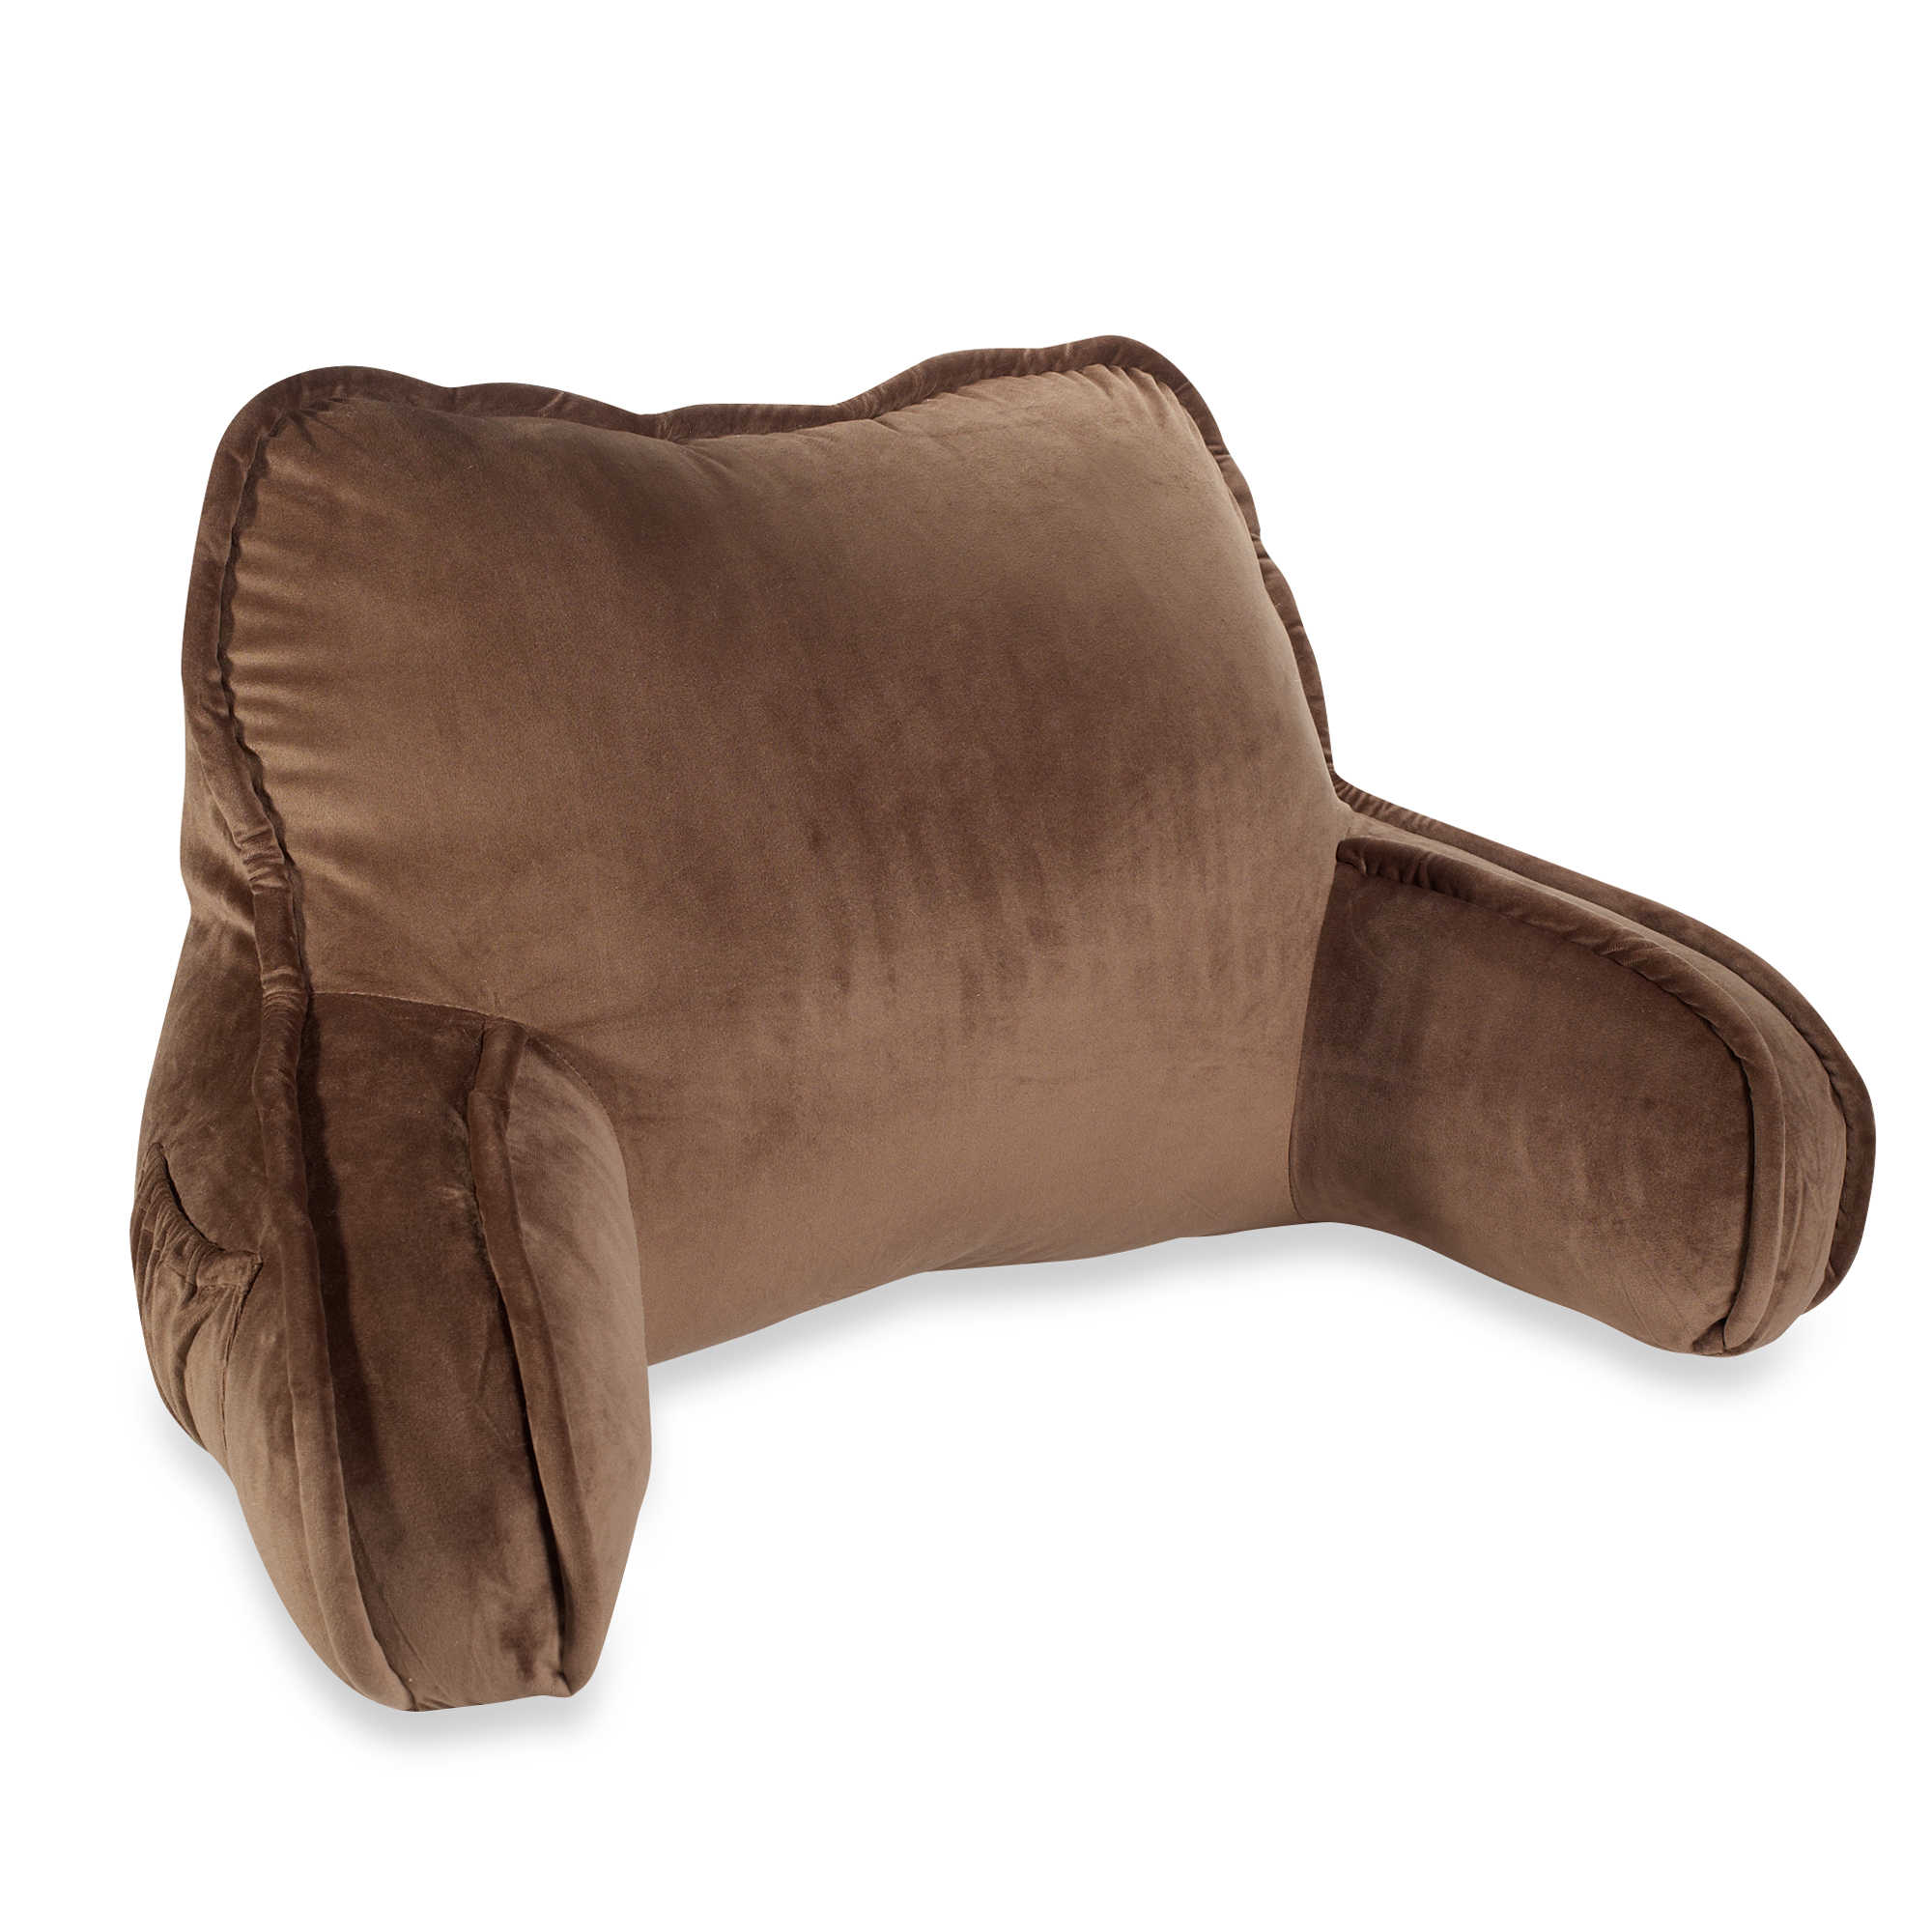 Pillow For Sitting Up In Bed Sit Up Pillows With Arms Where To Buy Quality Bed Rest